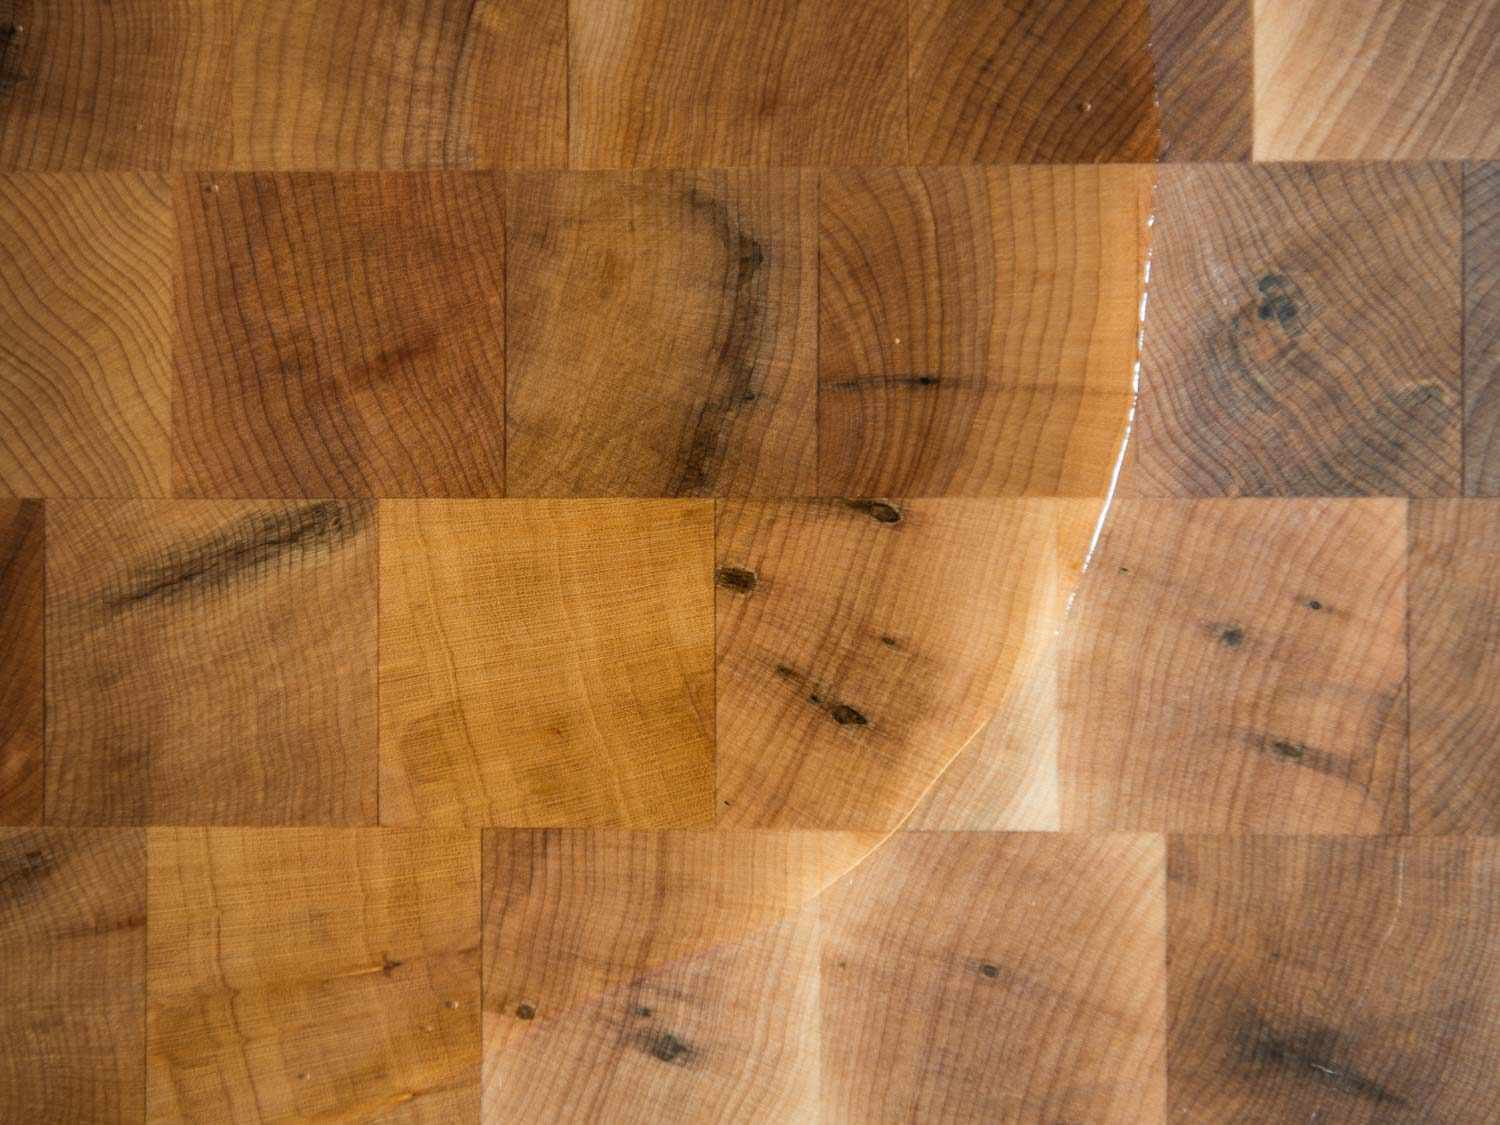 mineral oil covering a wood board